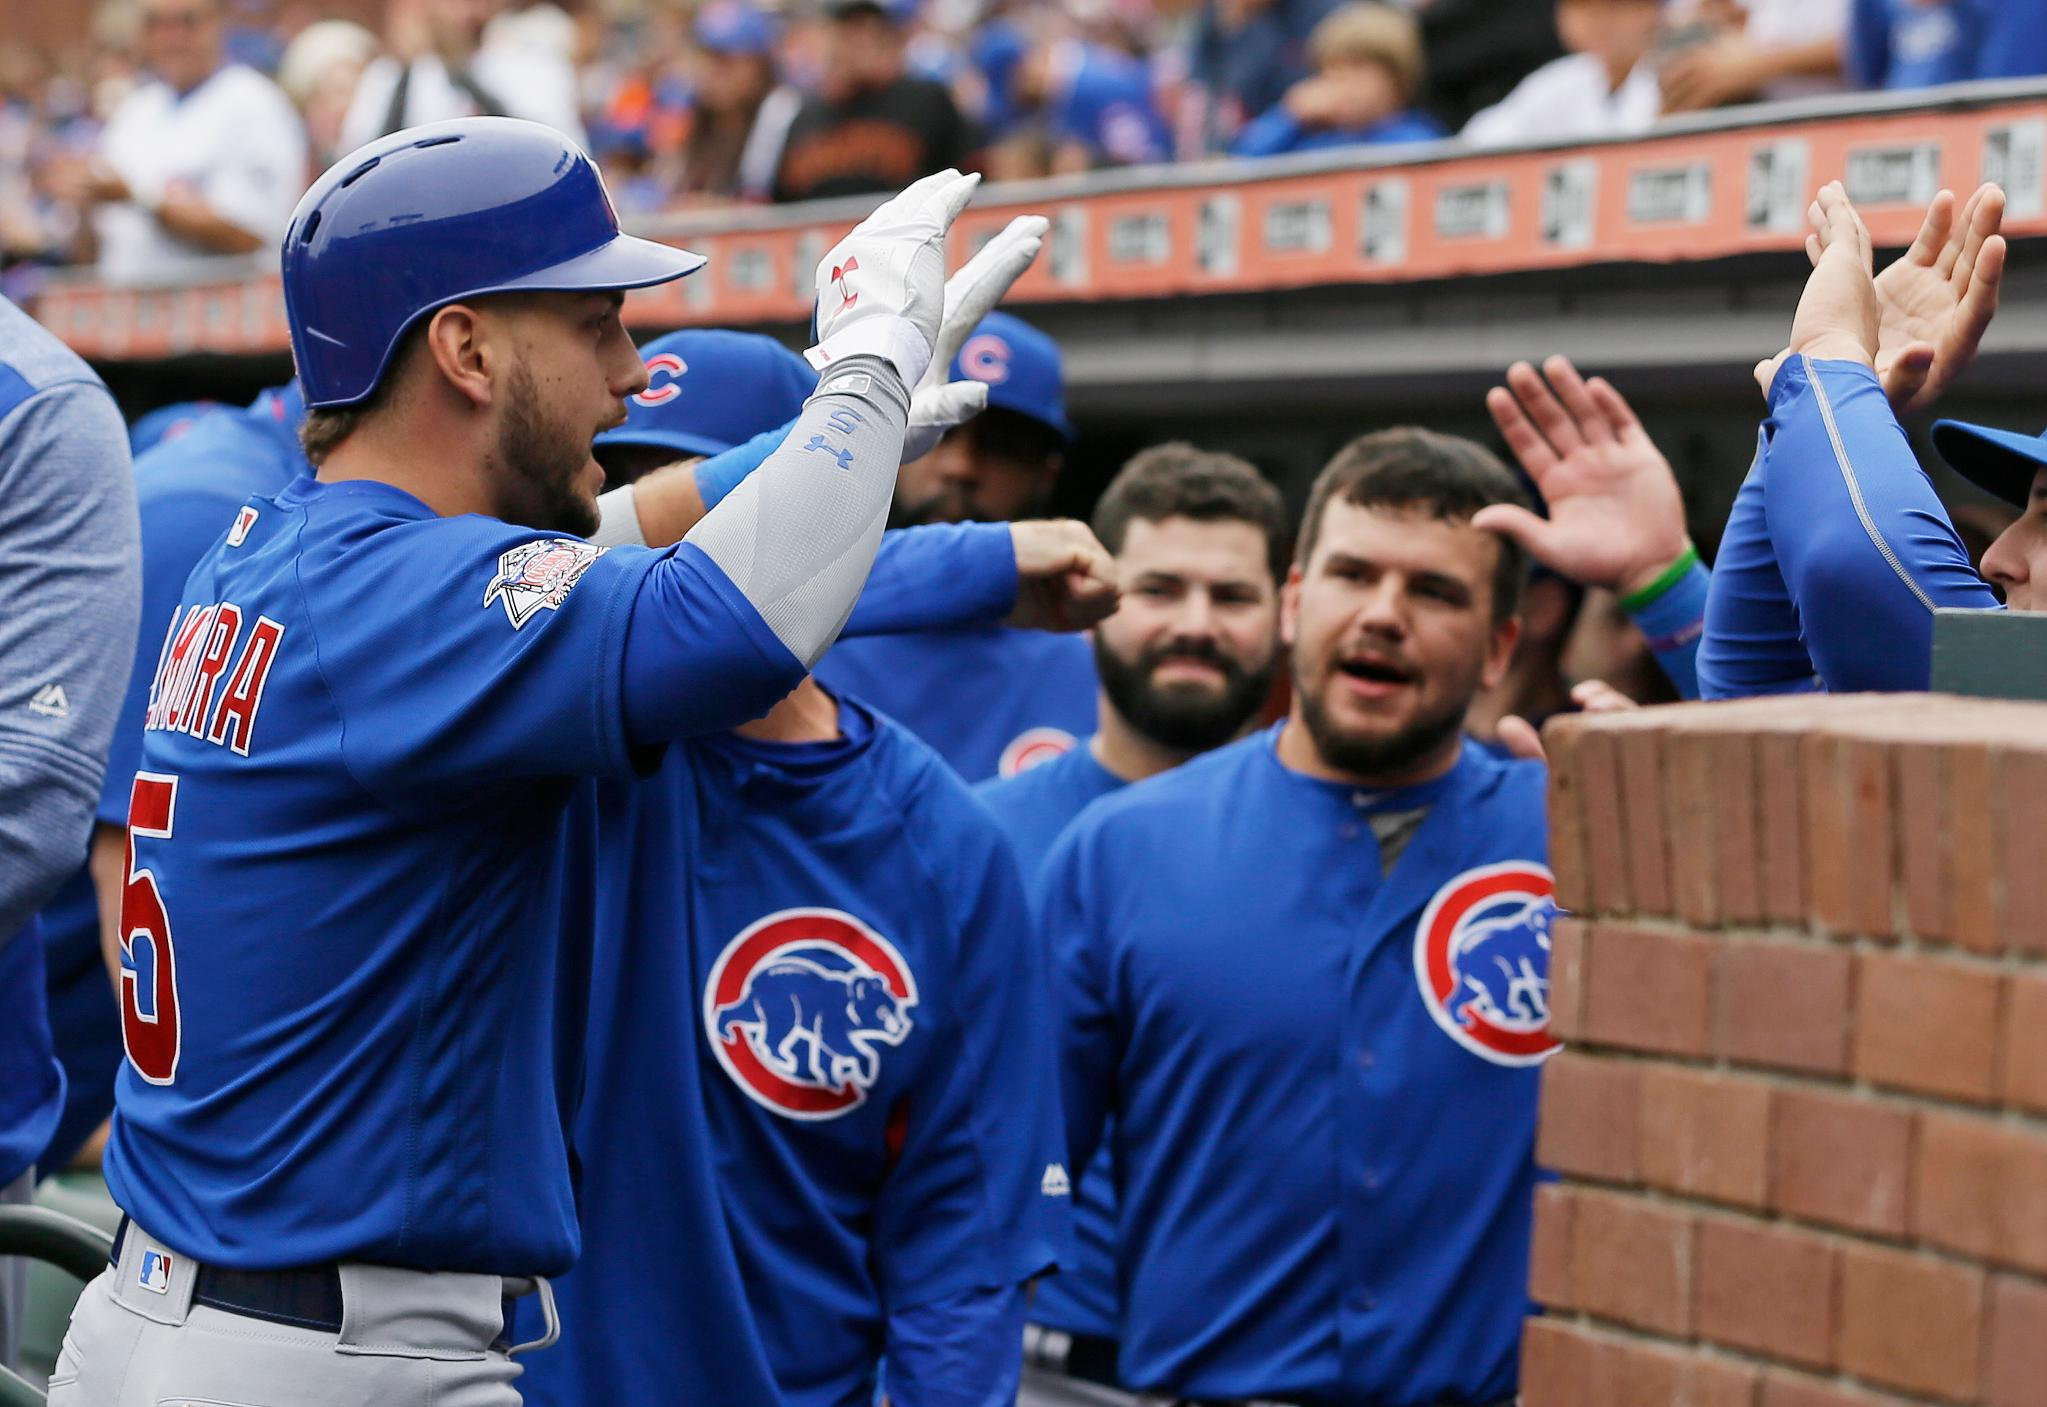 Watch @albertalmora's 5th home run of the year: https://t.co/I37TS1QaxK https://t.co/LQHwwkde0J